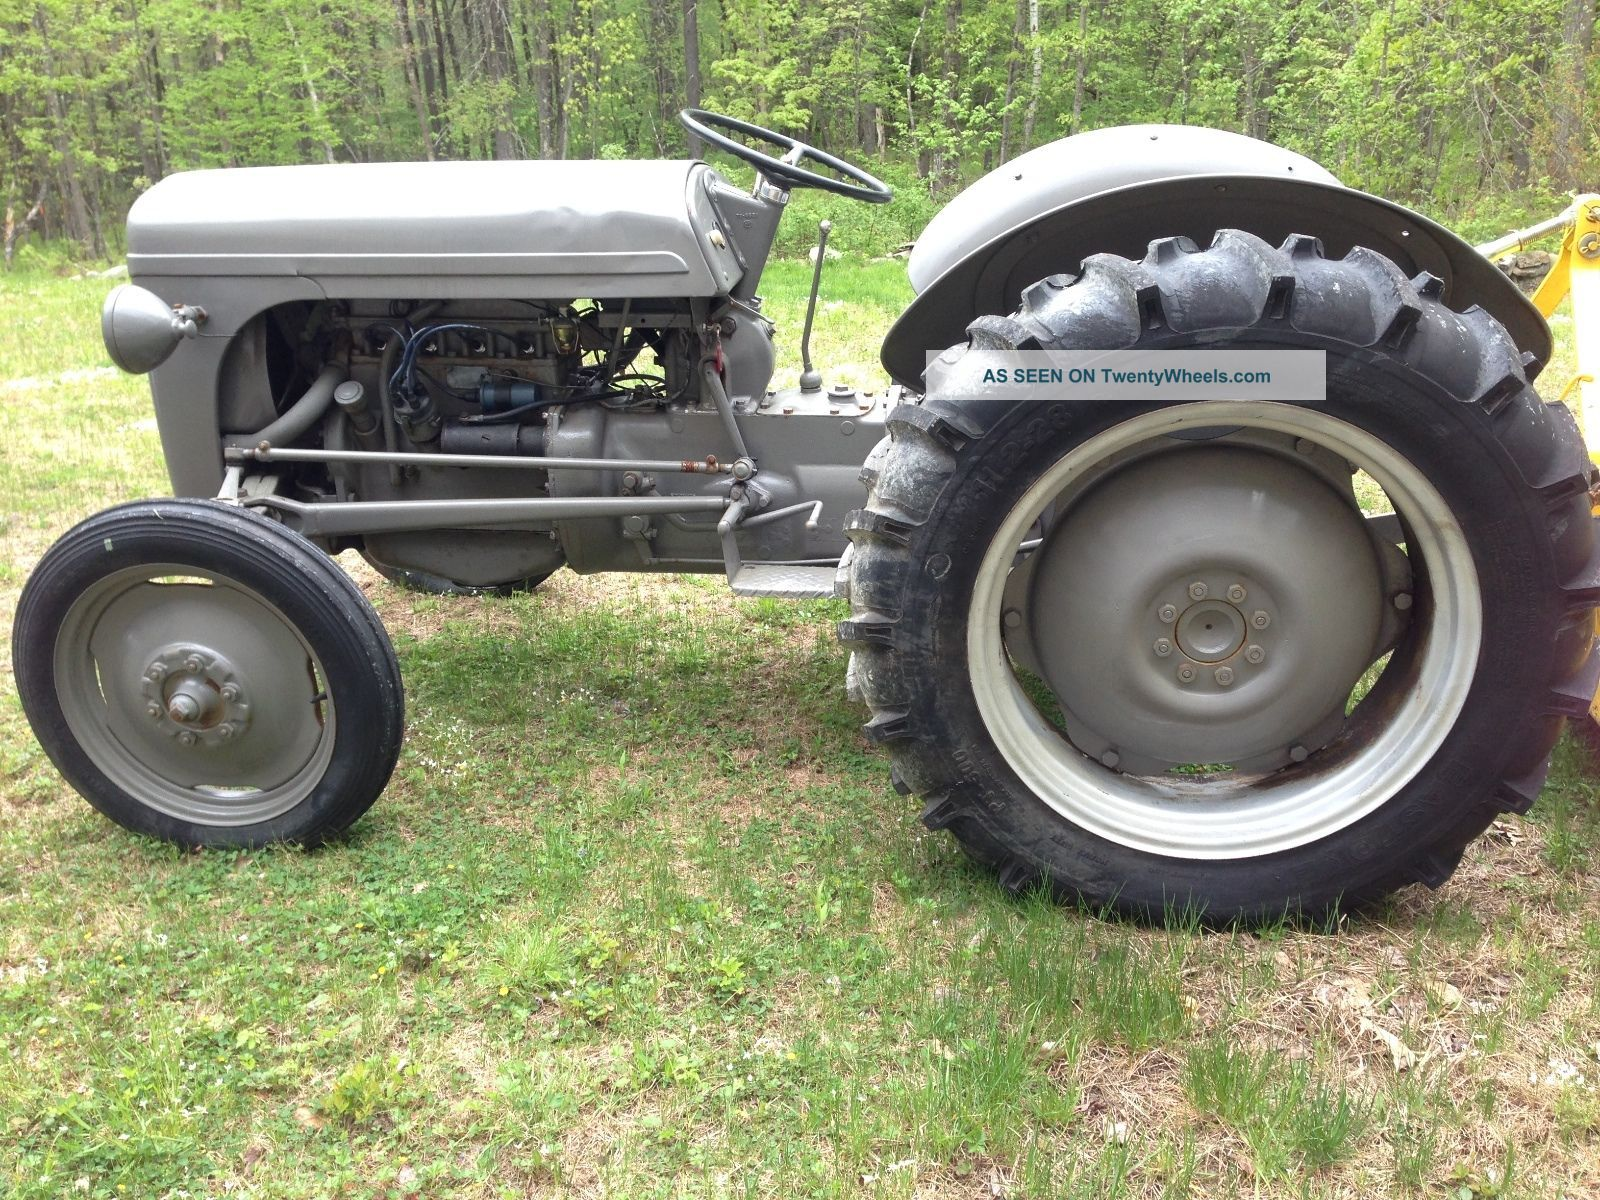 To 20 Ferguson Tractor : Ferguson to tractor with m brush hog mower